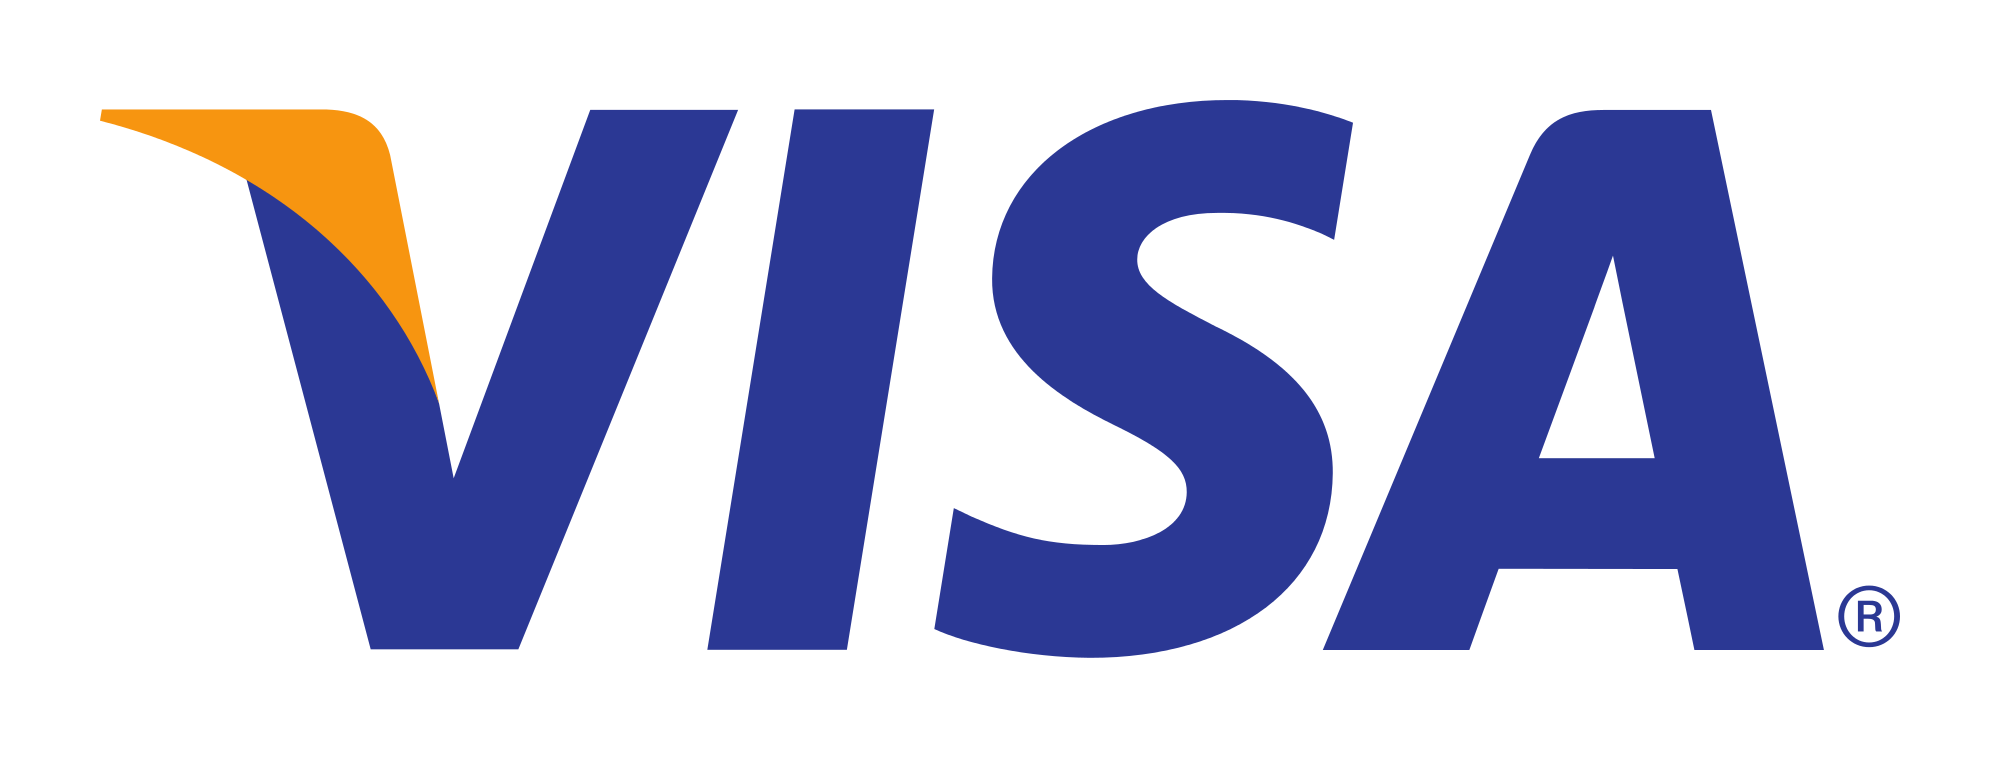 Visa CPS Retail Interchange rate explanation with Dharma